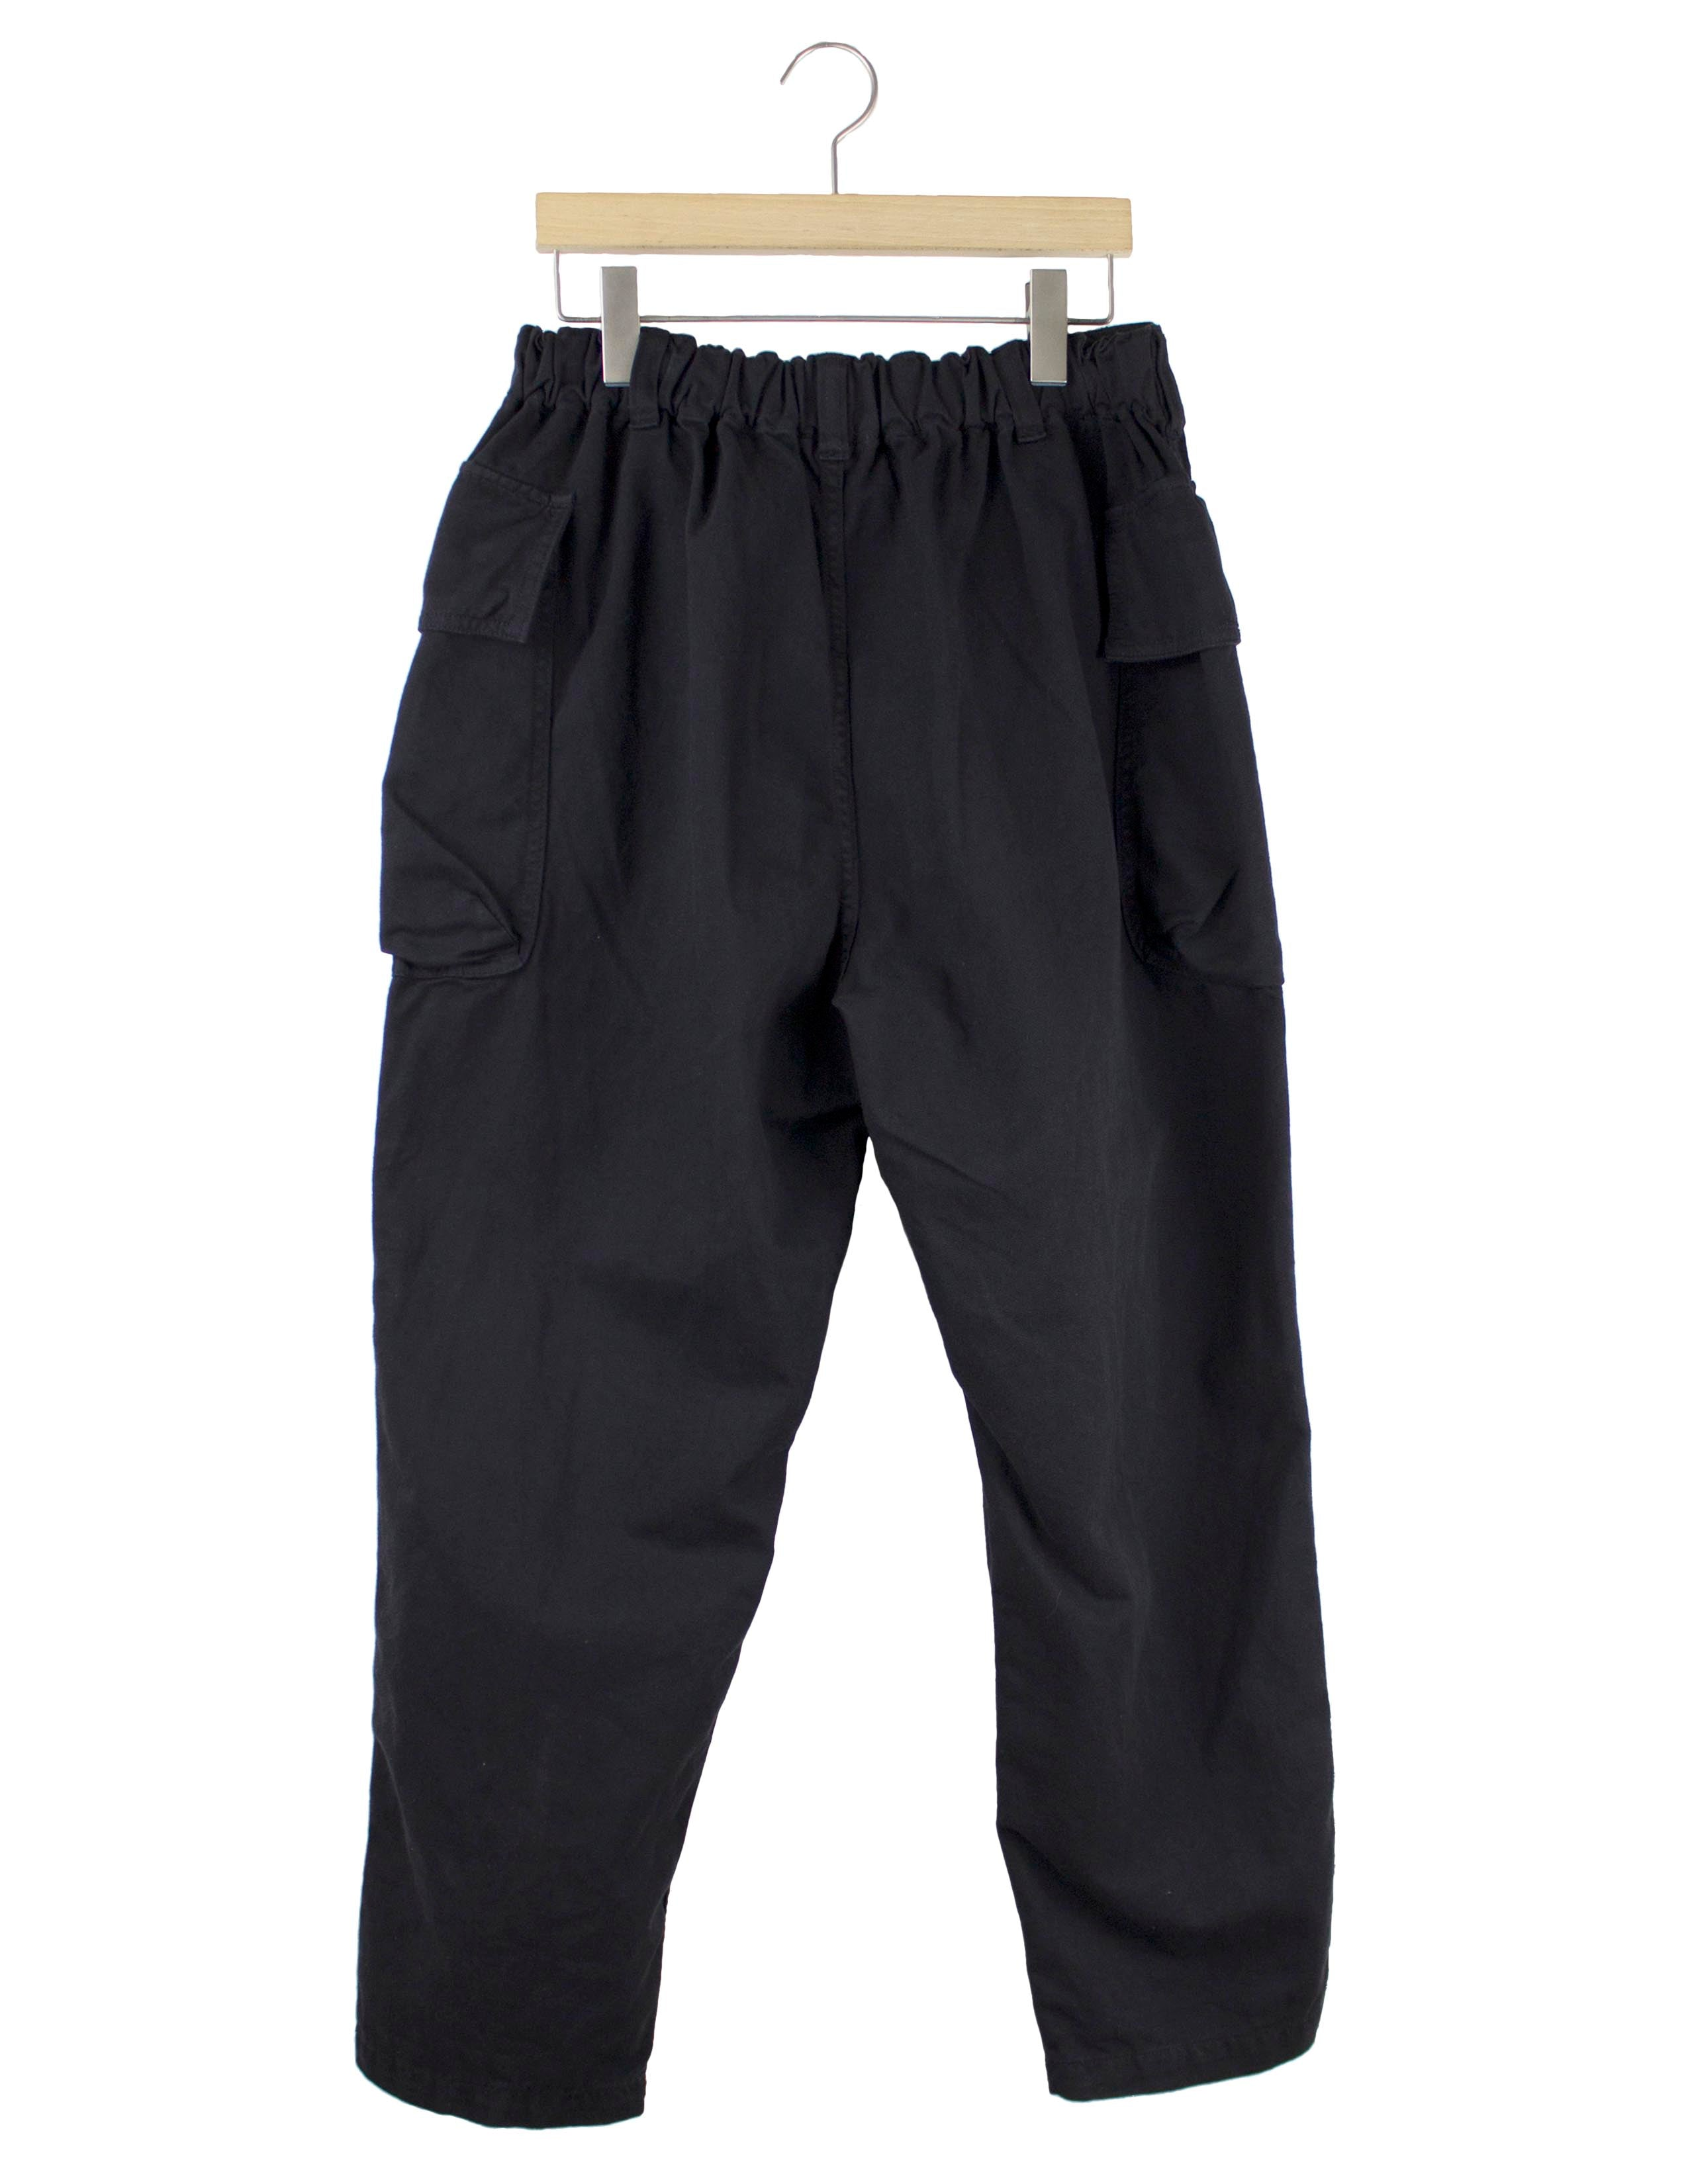 MILITARY COTTON PANT